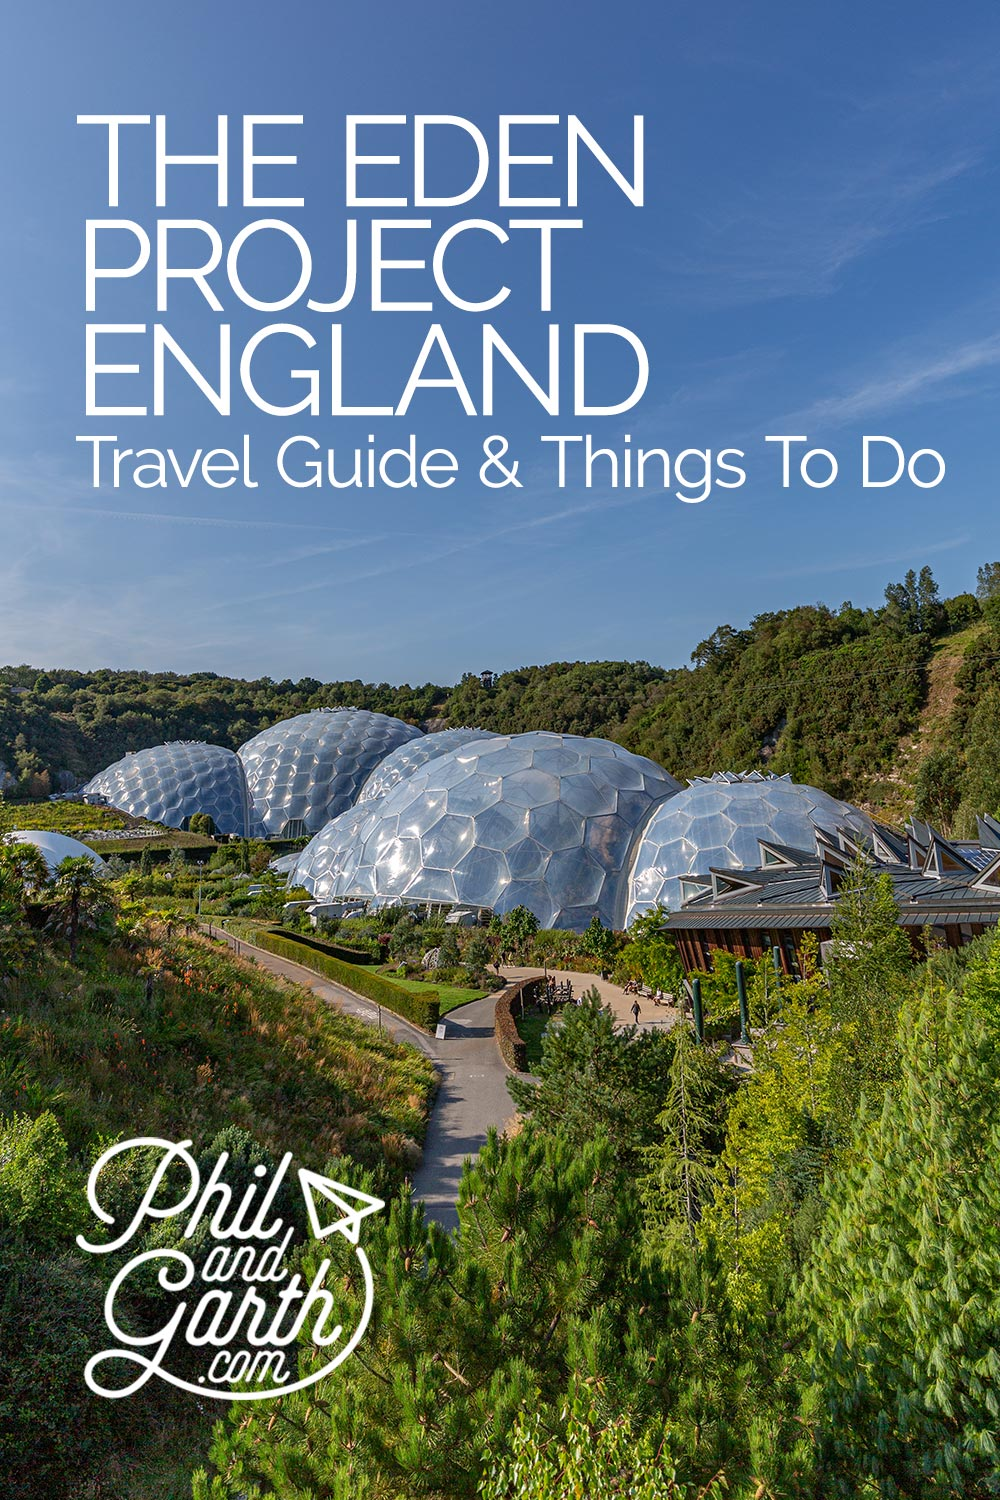 The Eden Project Travel Guide and Things To Do